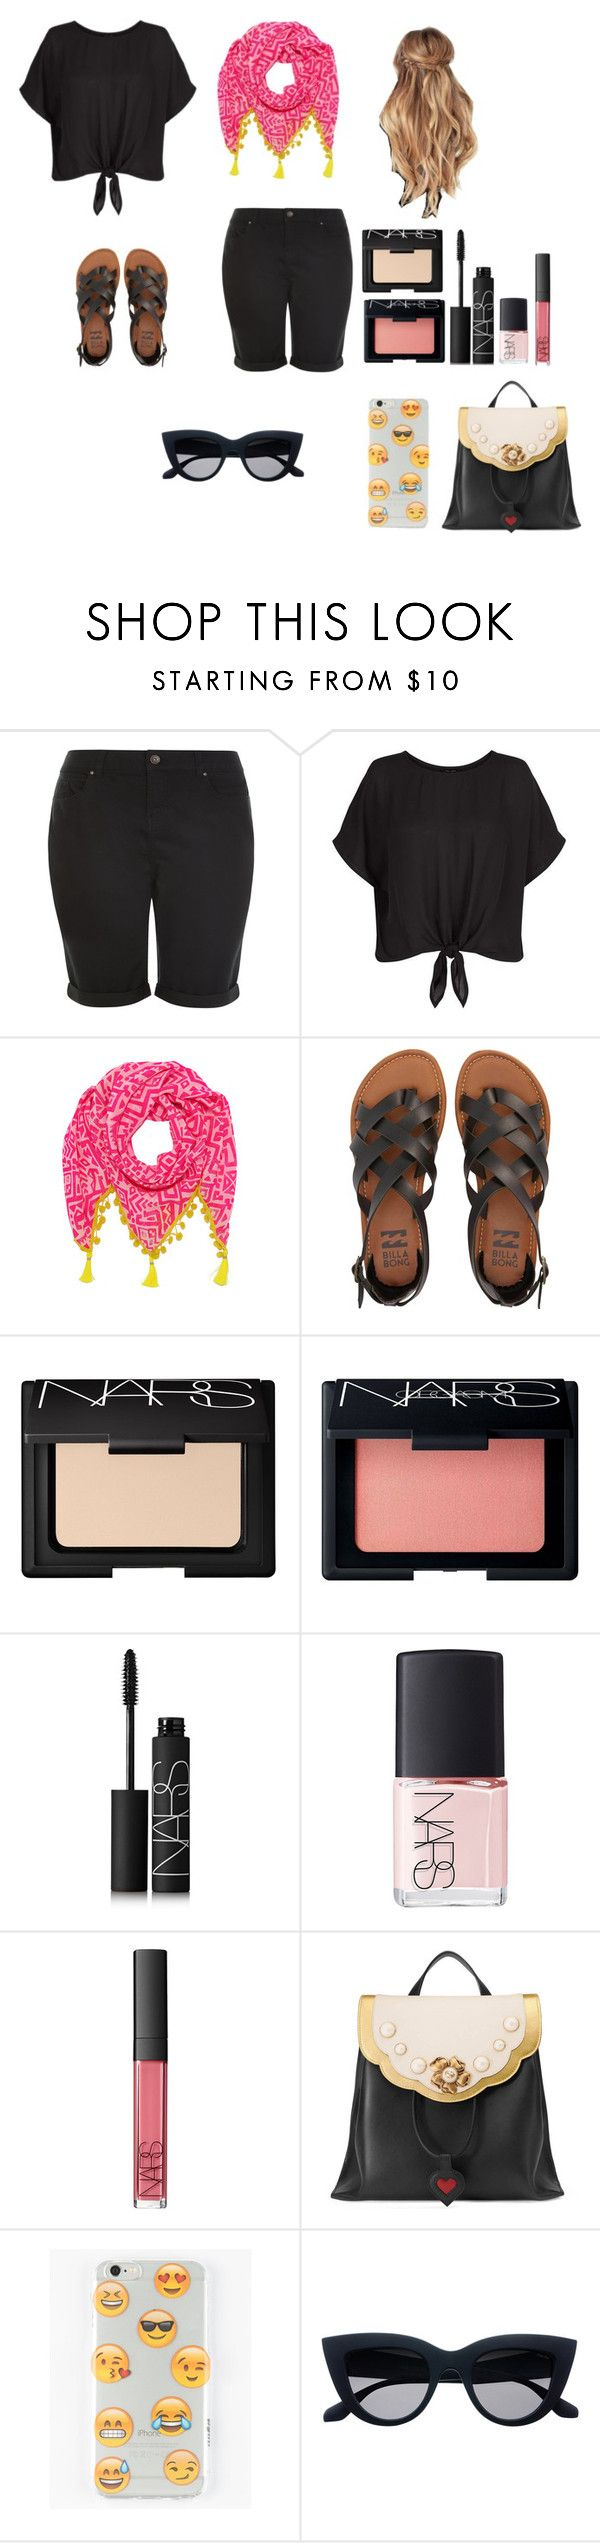 """Sunday Chillin"" by ittybittyrsunshine ❤ liked on Polyvore featuring New Look, Mercy Delta, Billabong, NARS Cosmetics, Gucci and Ankit"